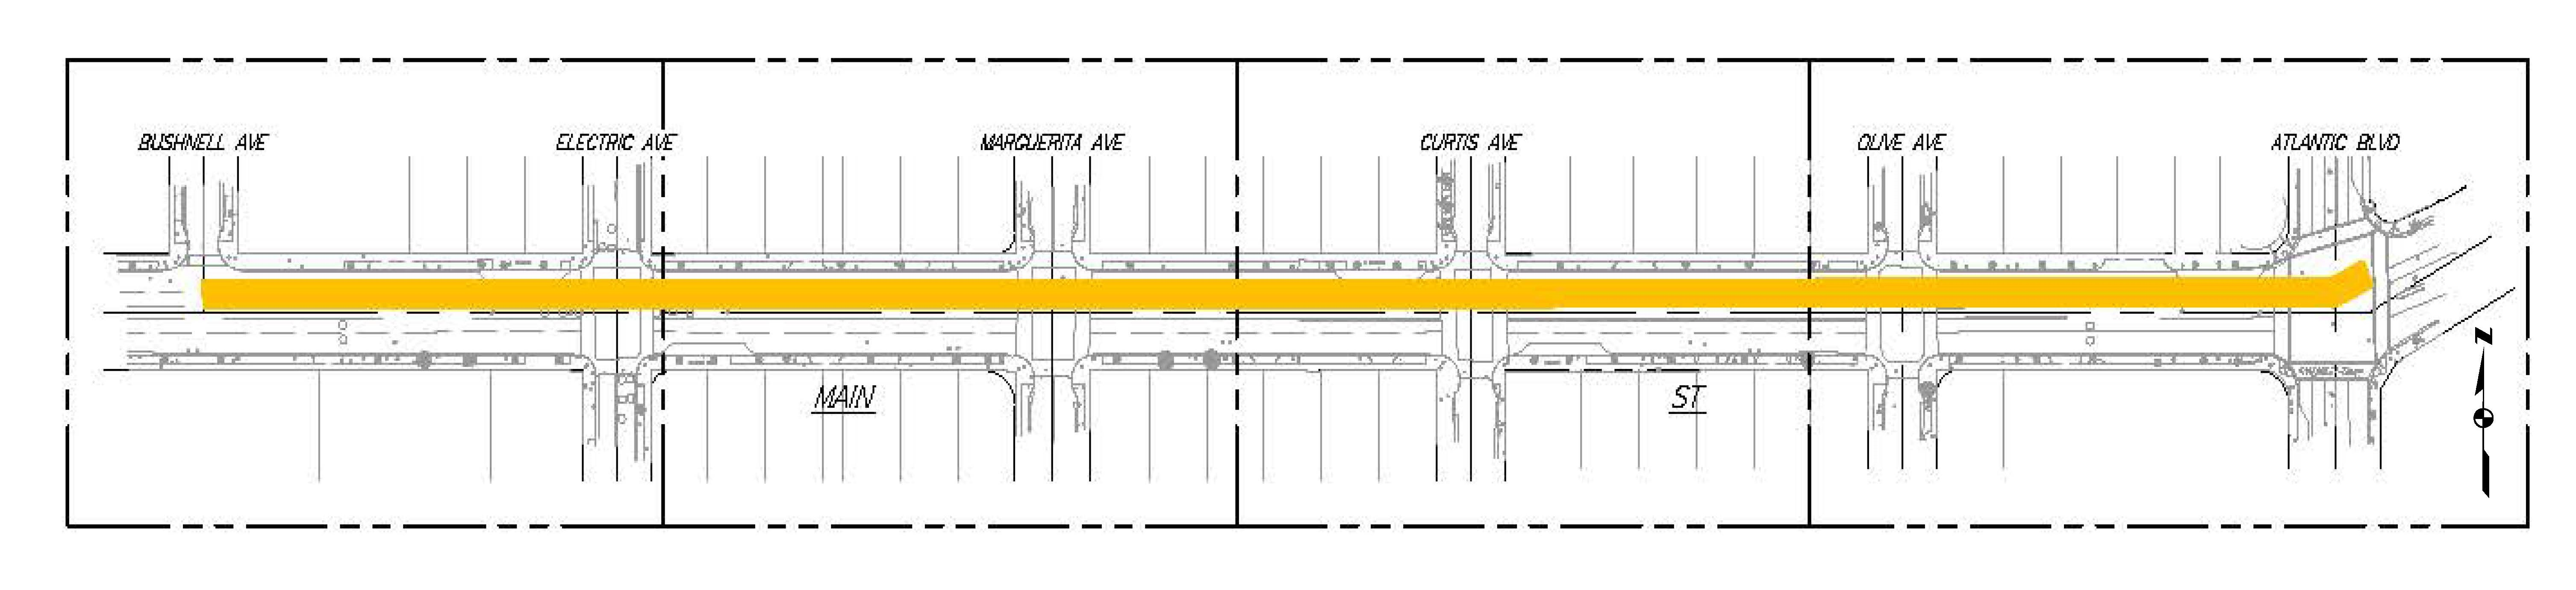 Map of Main Street Sewer Replacement Project Area